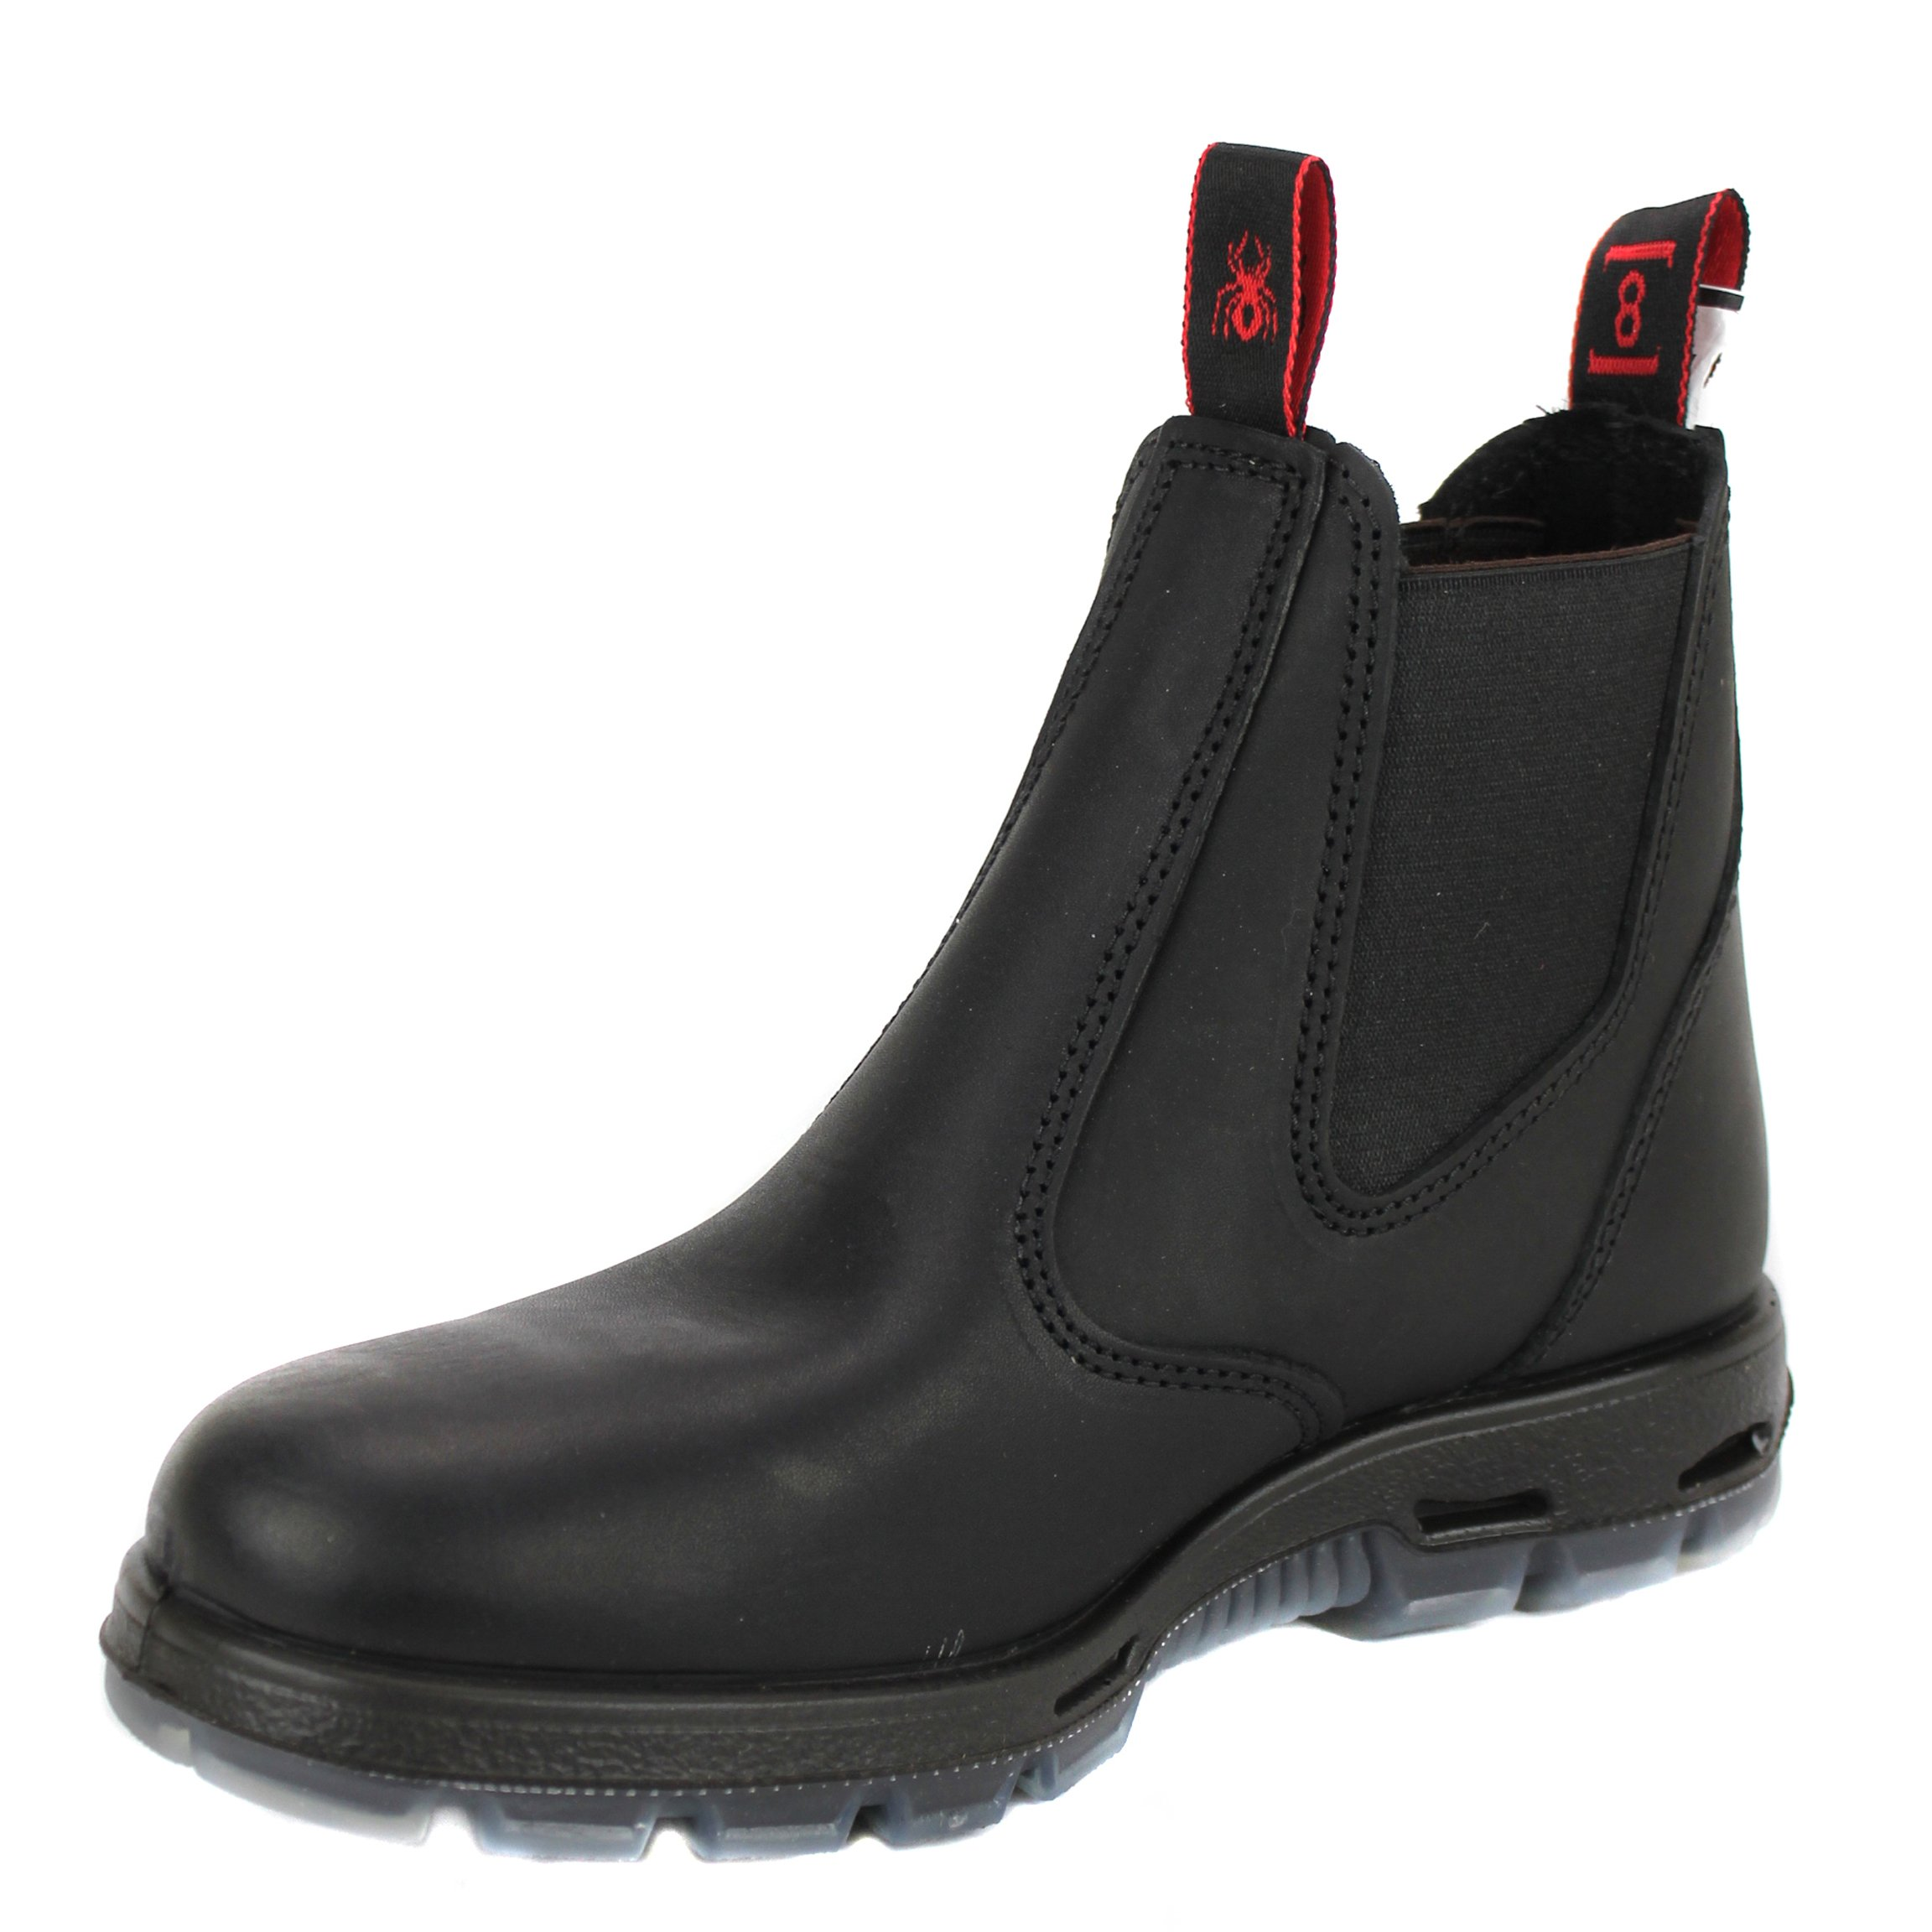 81a27f4b7a5ea1 RedbacK Men s Bobcat UBBK Elastic Sided Soft Toe Black Leather Work Boot